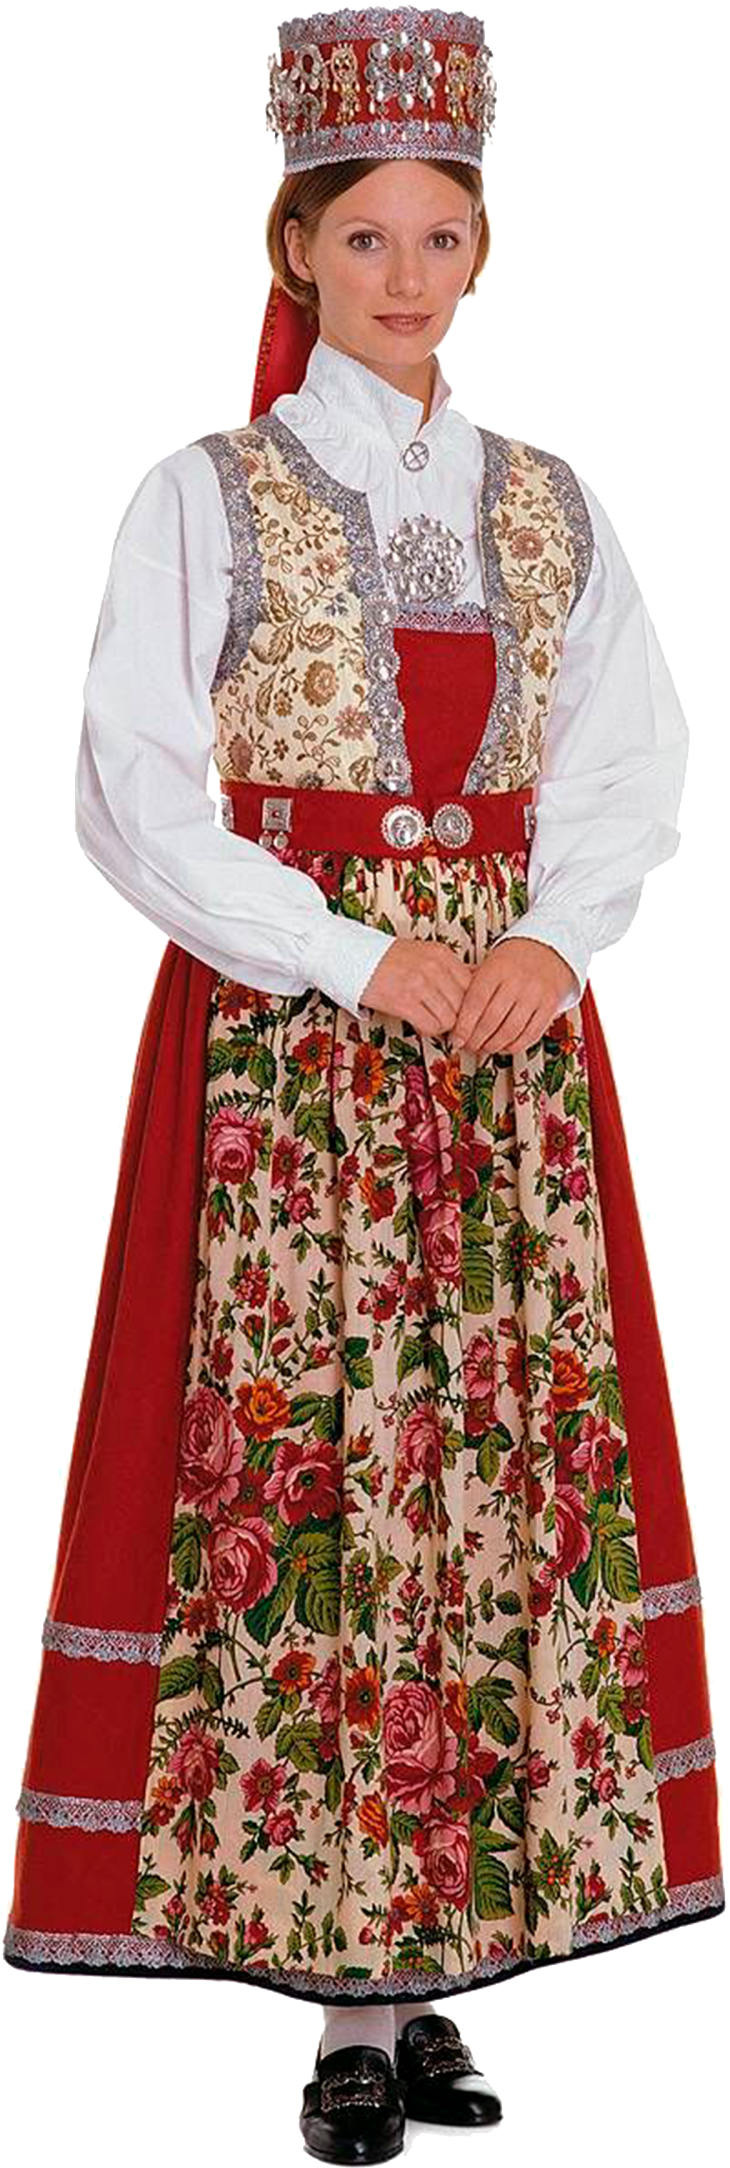 Wings of Whimsy: Traditional Norwegian Bride - Hallingdal